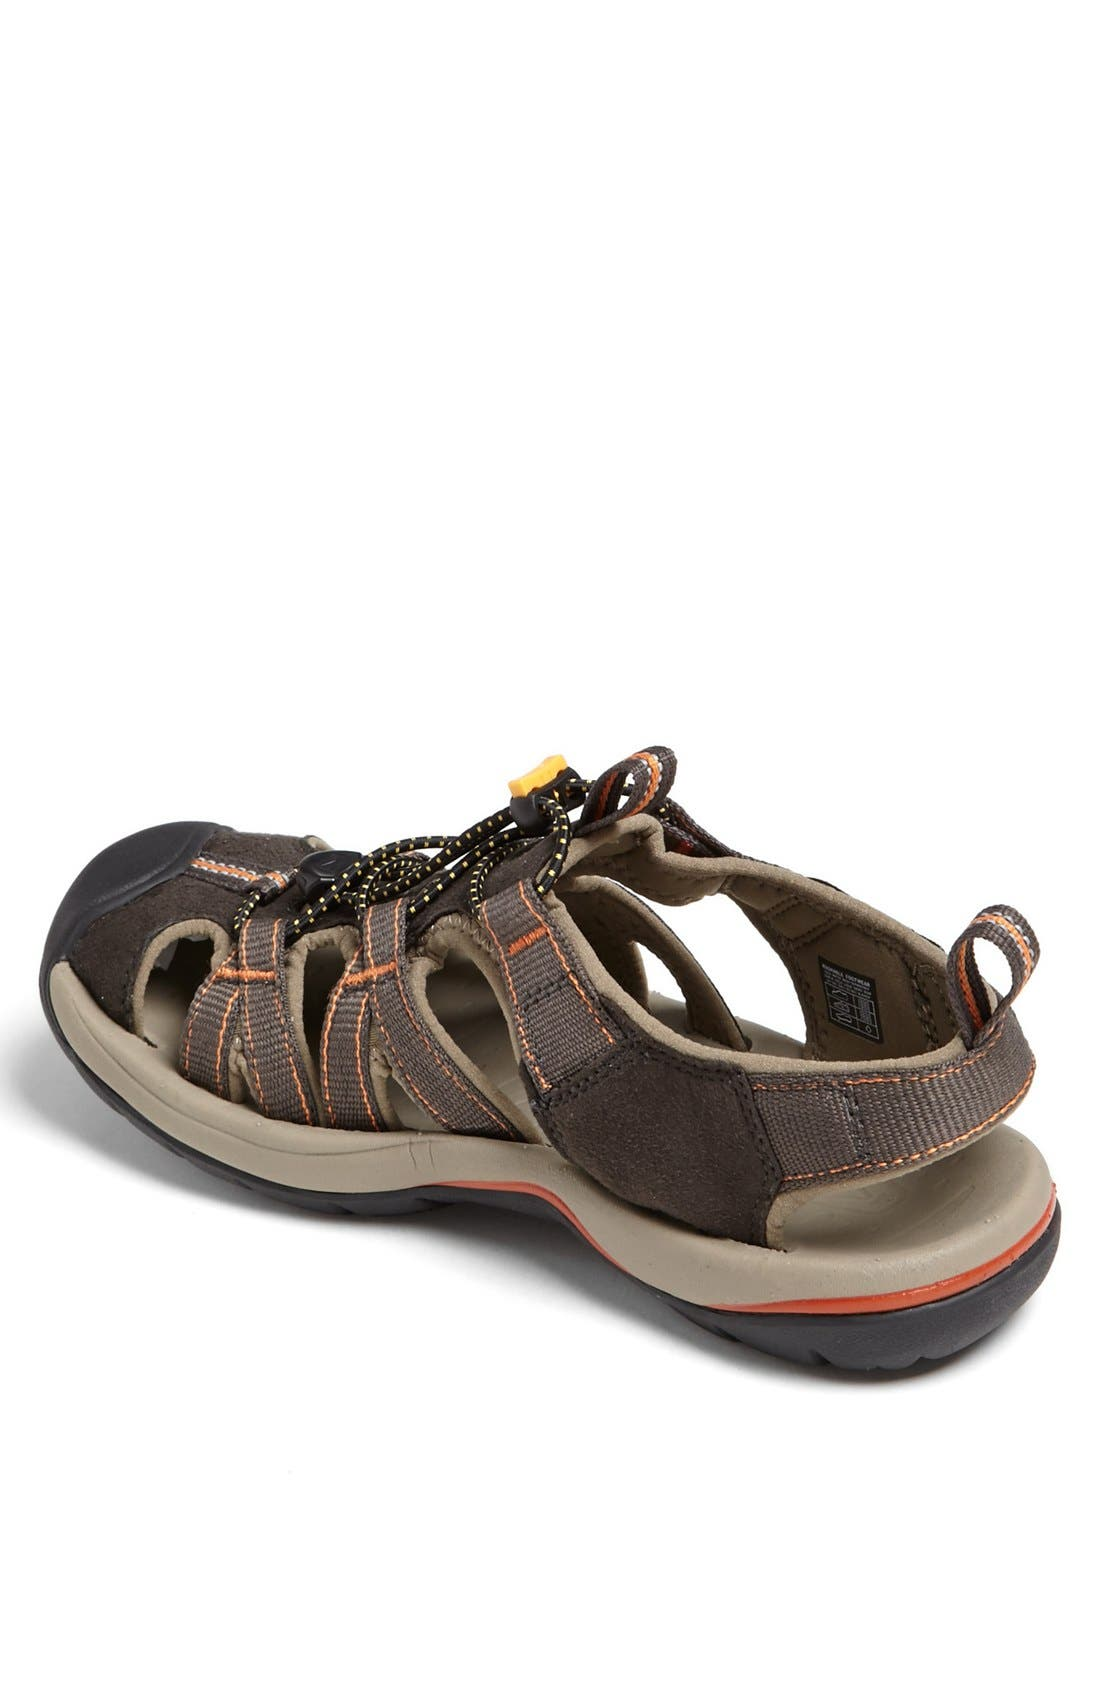 Alternate Image 2  - Keen 'Kanyon' Waterproof Sandal (Men)